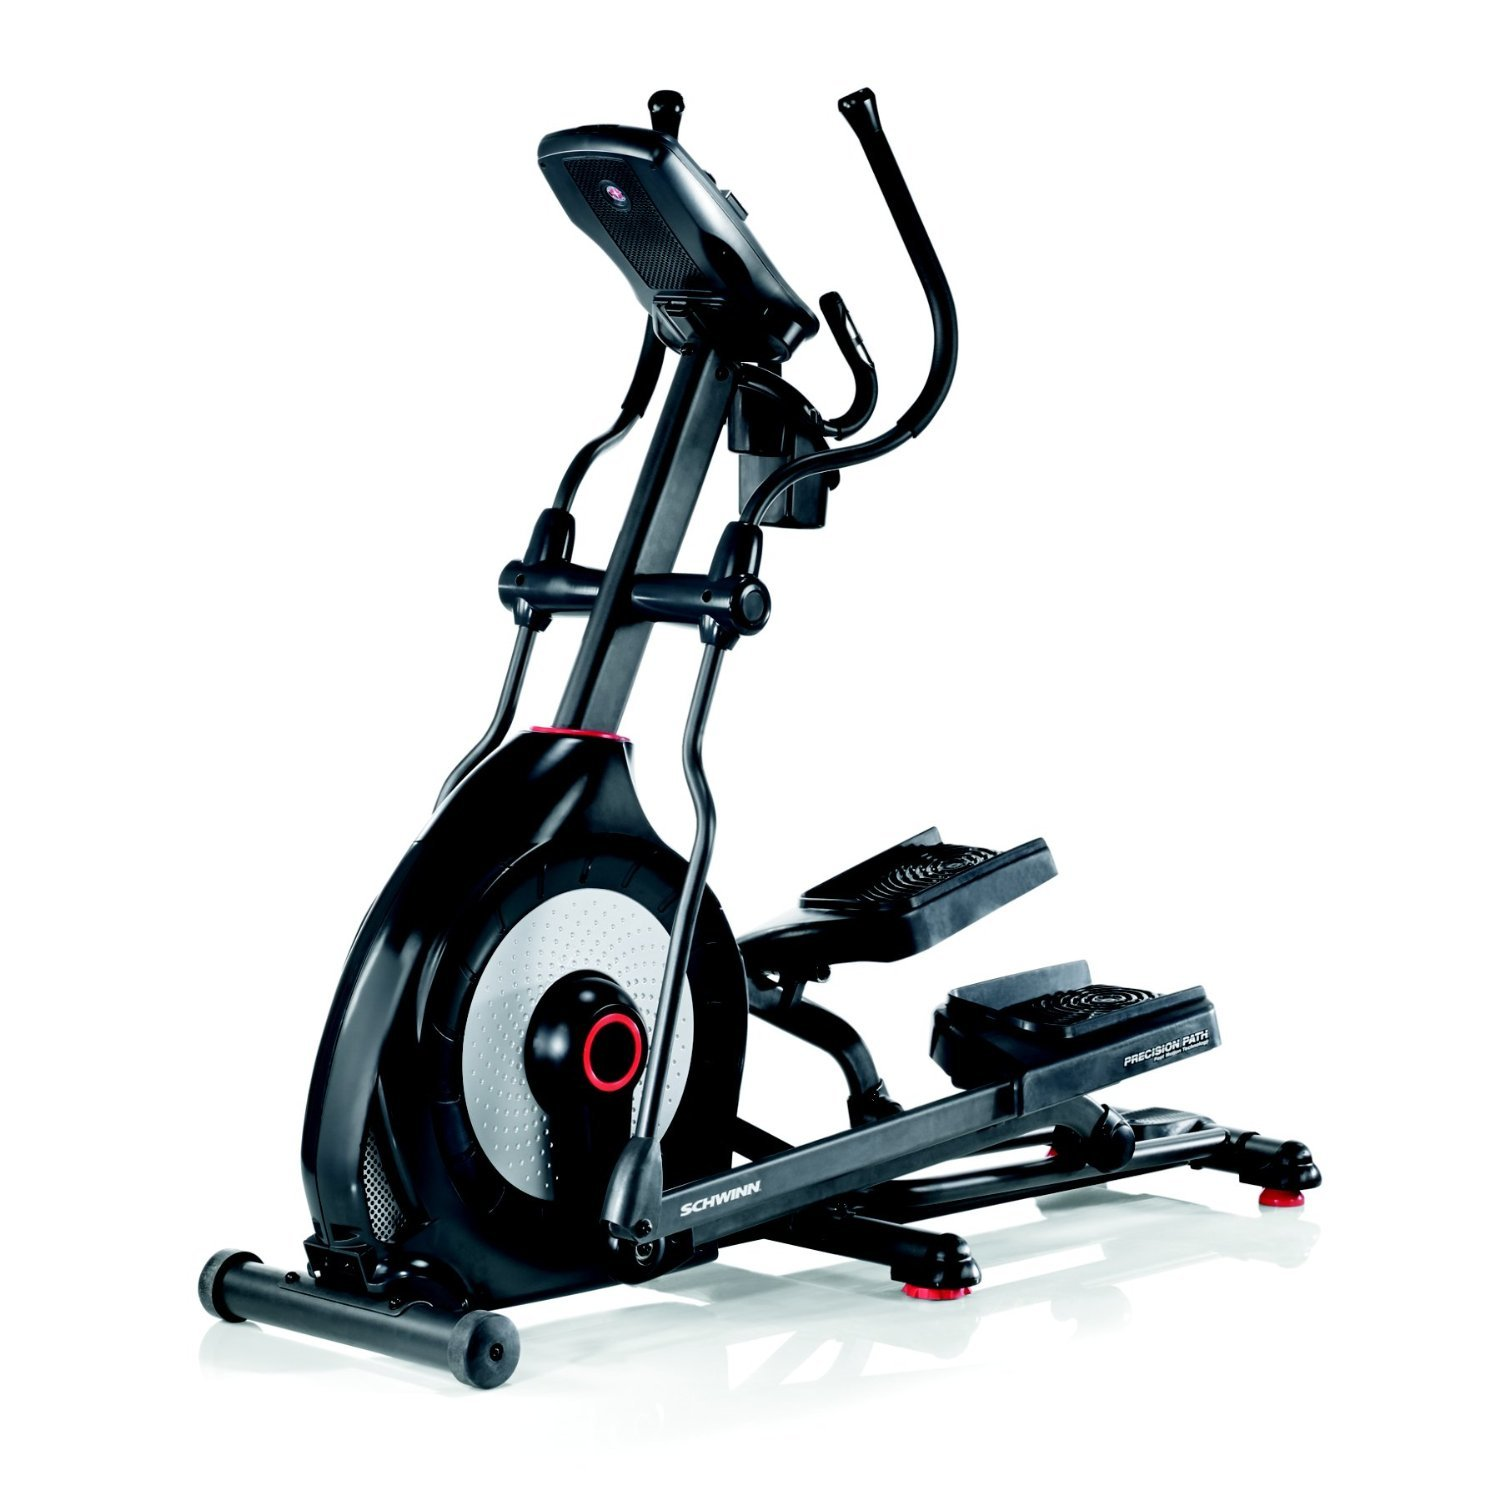 Schwinn 470 is another awesome elliptical